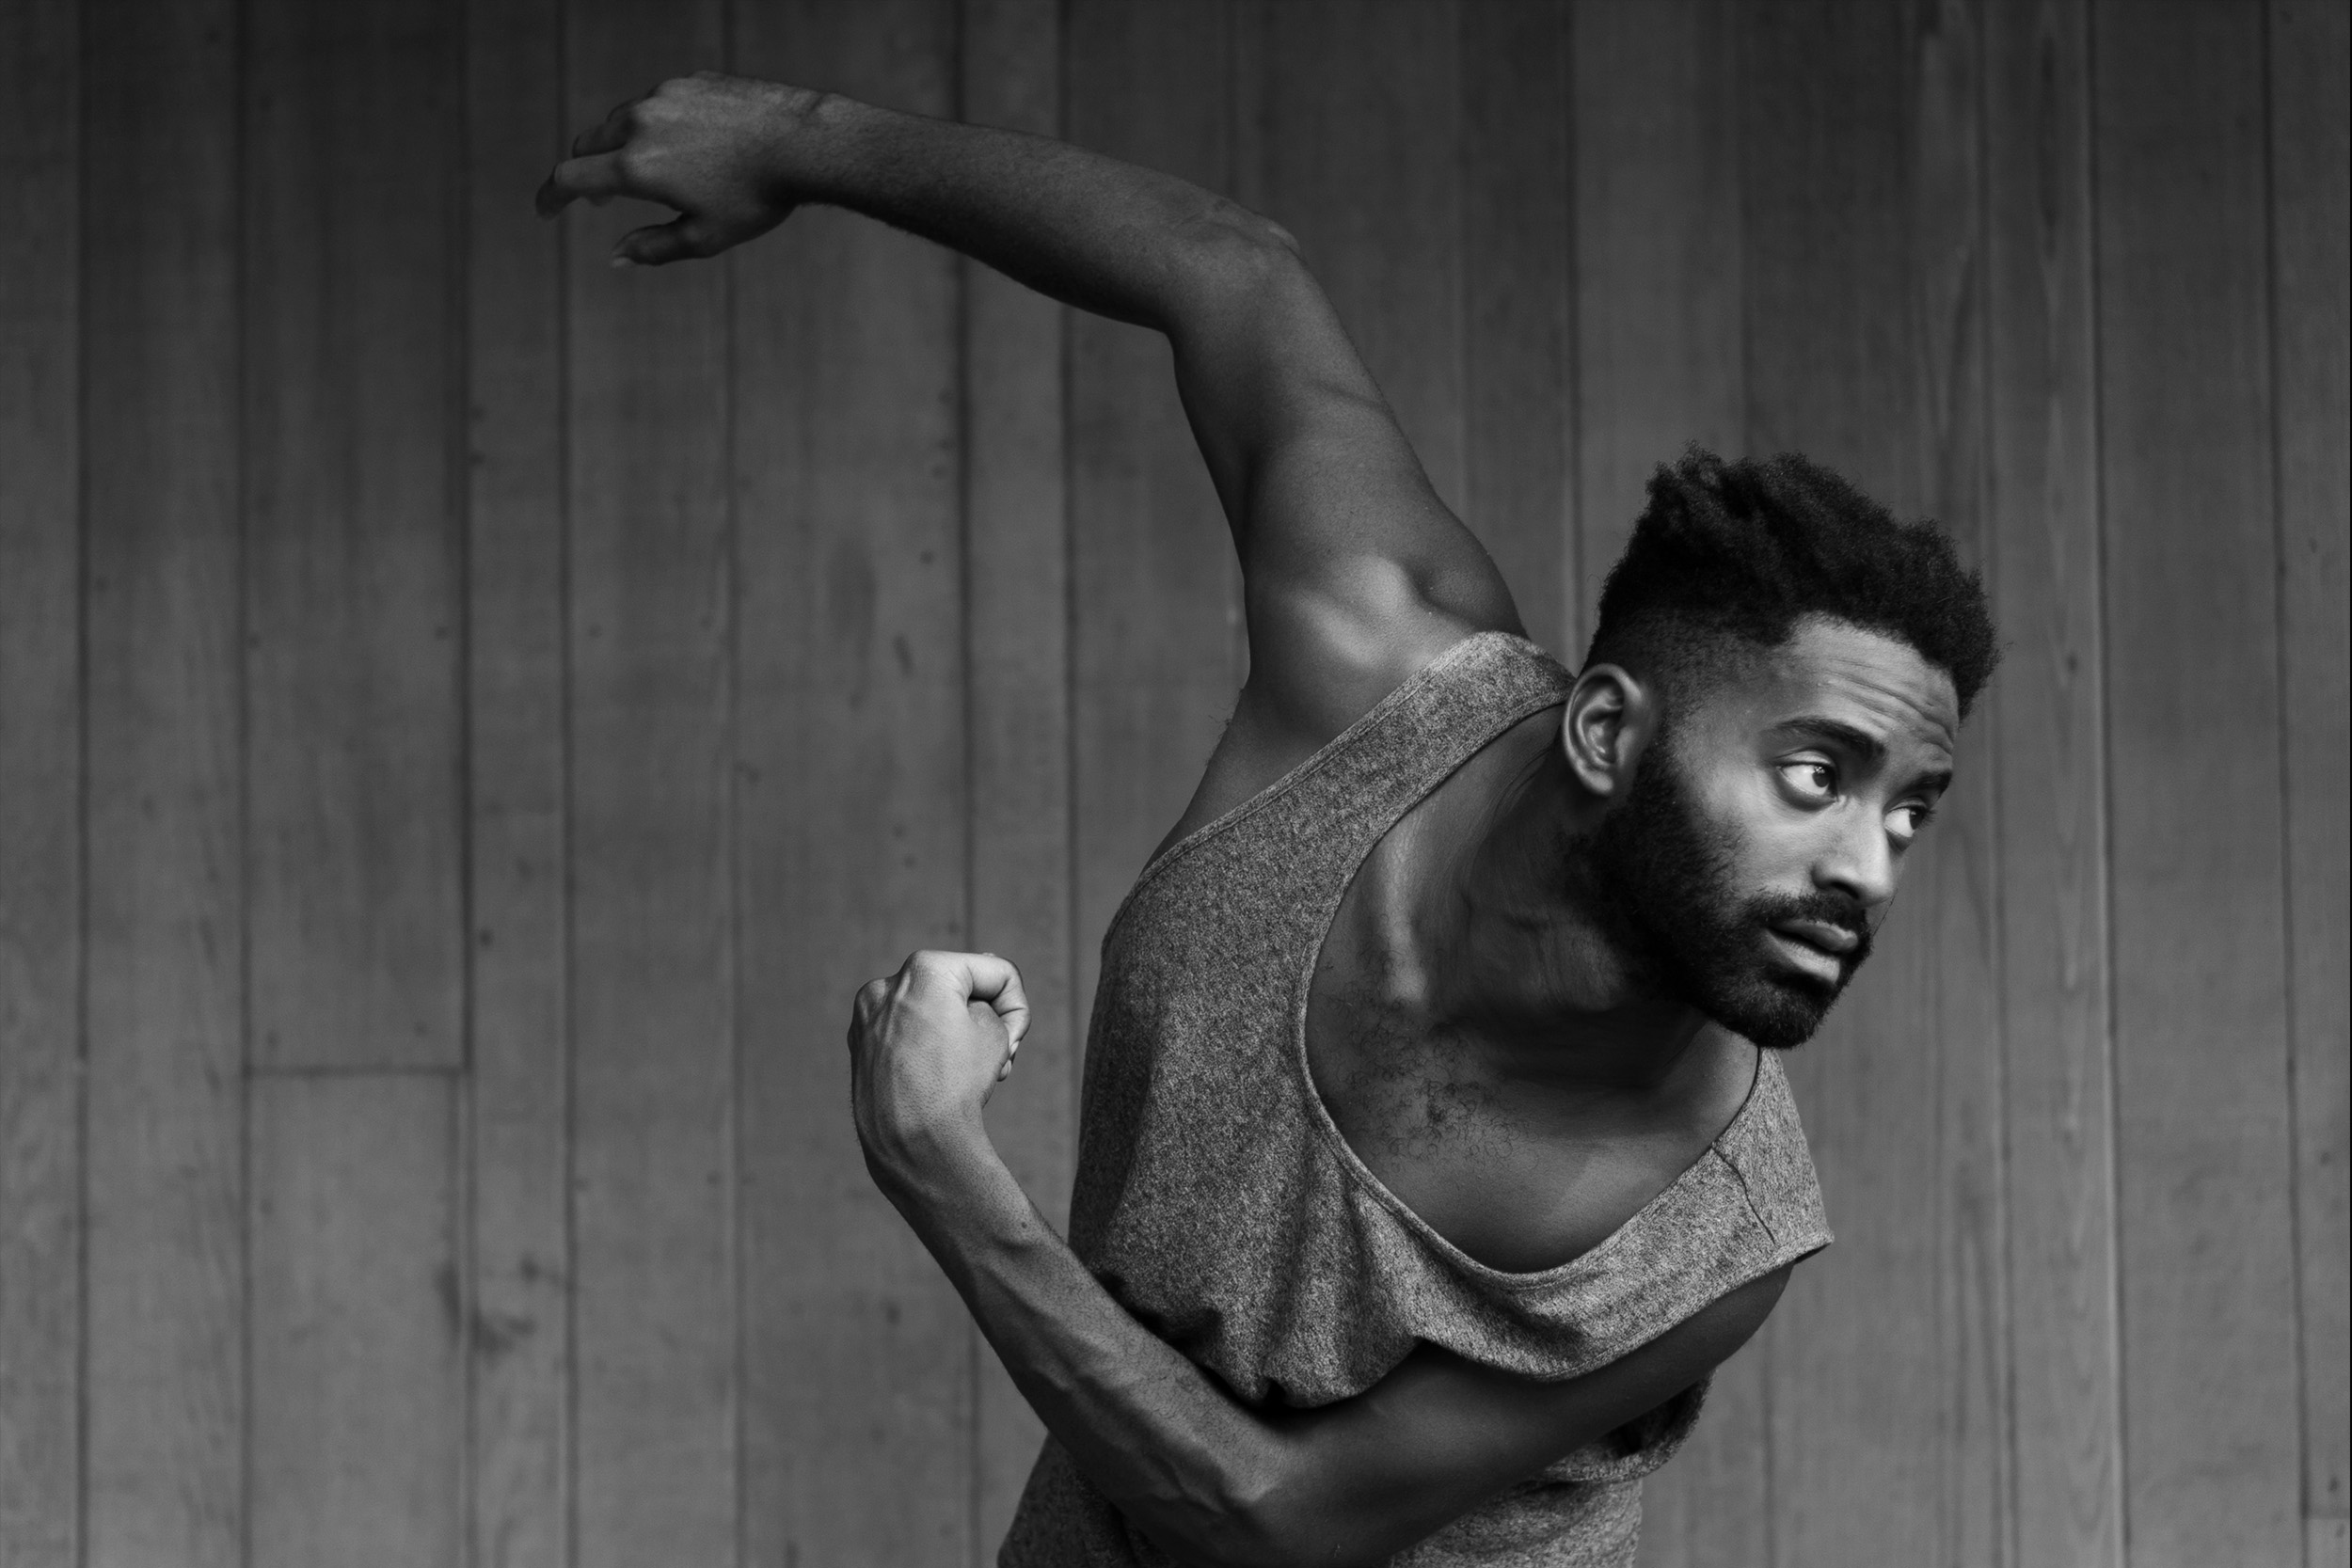 JERRON HERMAN - Jerron Herman is a Dancer and Administrator primarily for Heidi Latsky Dance where he's been a proud principal member since 2011. Jerron has been featured with the company at venues like Lincoln Center, American Dance Festival, and the Whitney Museum. Jerron currently sits on the Board of Trustees at Dance/USA and has sat on various symposium panels. He was featured most recently in a profile on dancing with Cerebral Palsy by Great Big Story. As a writer, he was named a finalist for the Inaugural Apothetae/Lark Play Development Lab Fellowship and continues to write theater and art criticism. As a model, Jerron shot a special campaign with Tommy Adaptive and Springible as well as an exploratory shoot for Nike Universal apparel. The New York Times has called him,